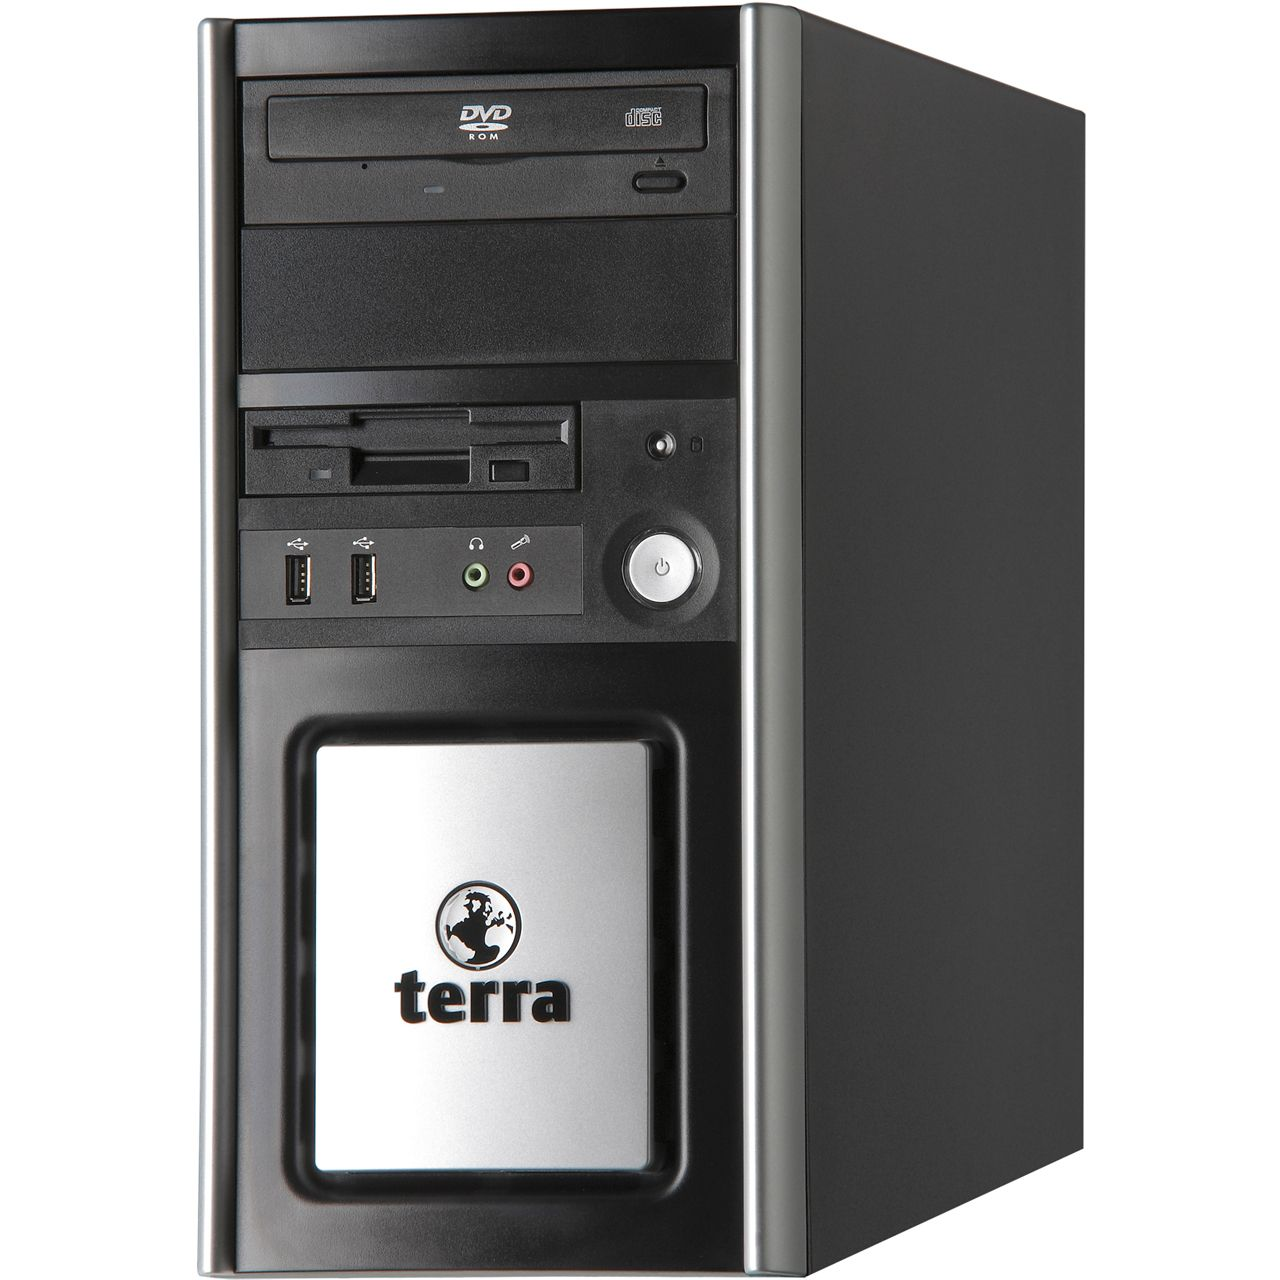 terra pc business 4000 ie5800 2gb 500 w7p32 business pcs. Black Bedroom Furniture Sets. Home Design Ideas